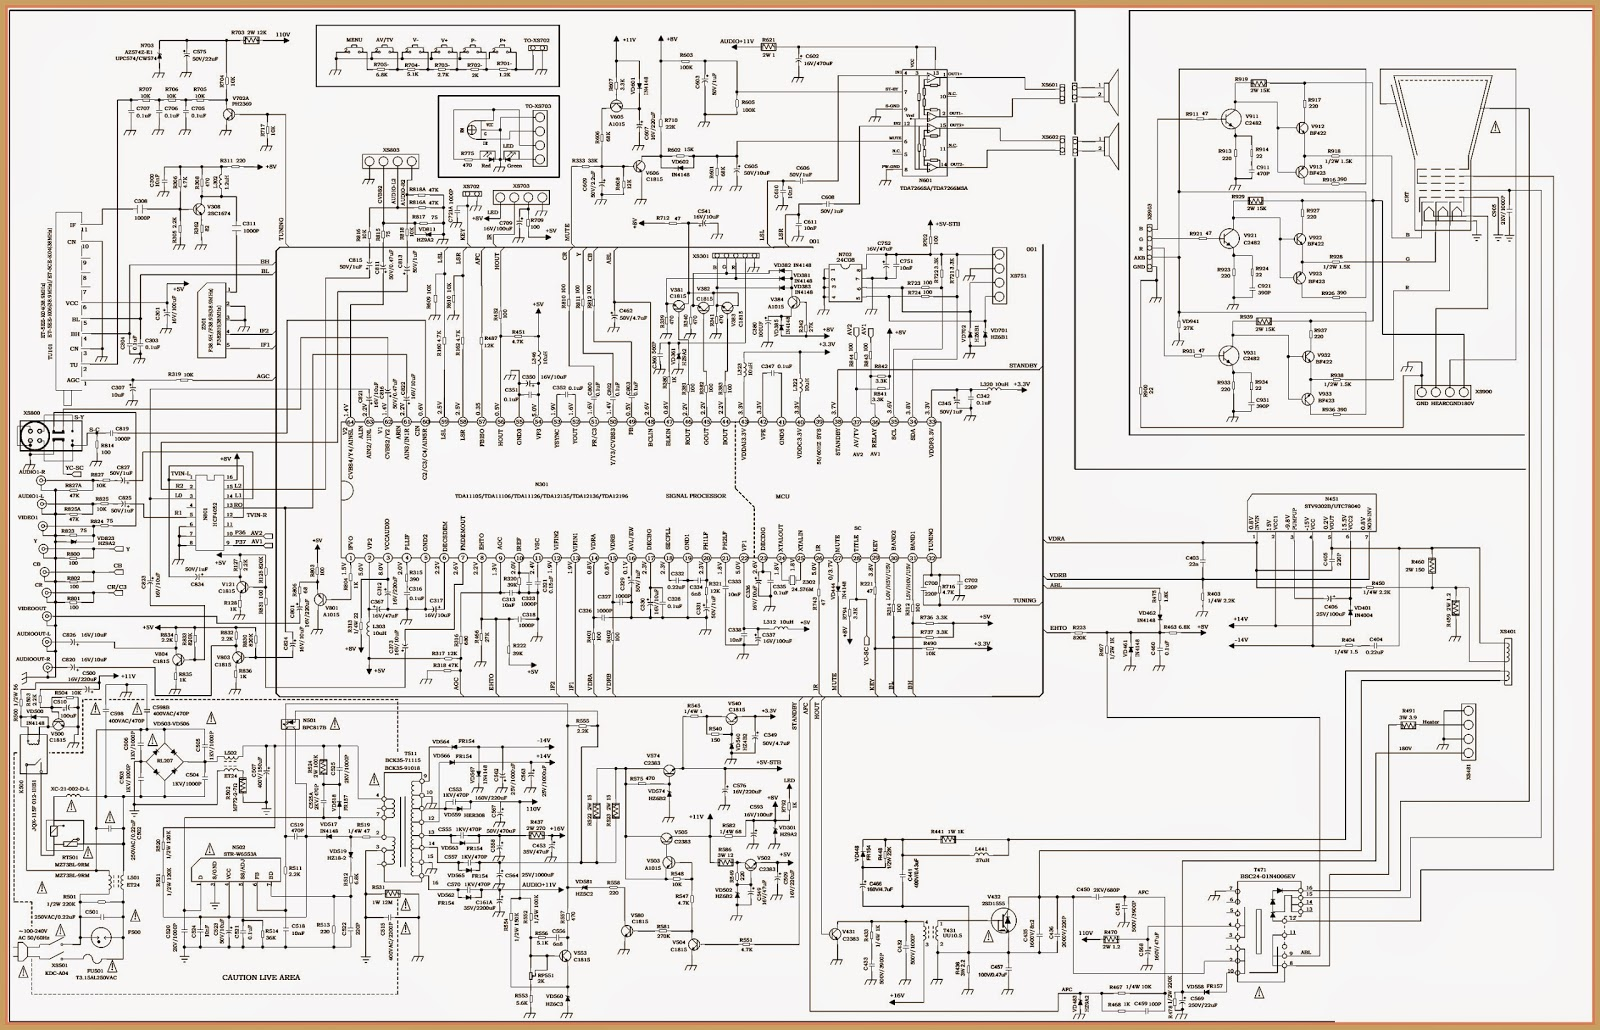 color tv kit circuit diagram full tda 11106 stv9302 based kitchen circuit diagram circuit diagram kit [ 1600 x 1030 Pixel ]